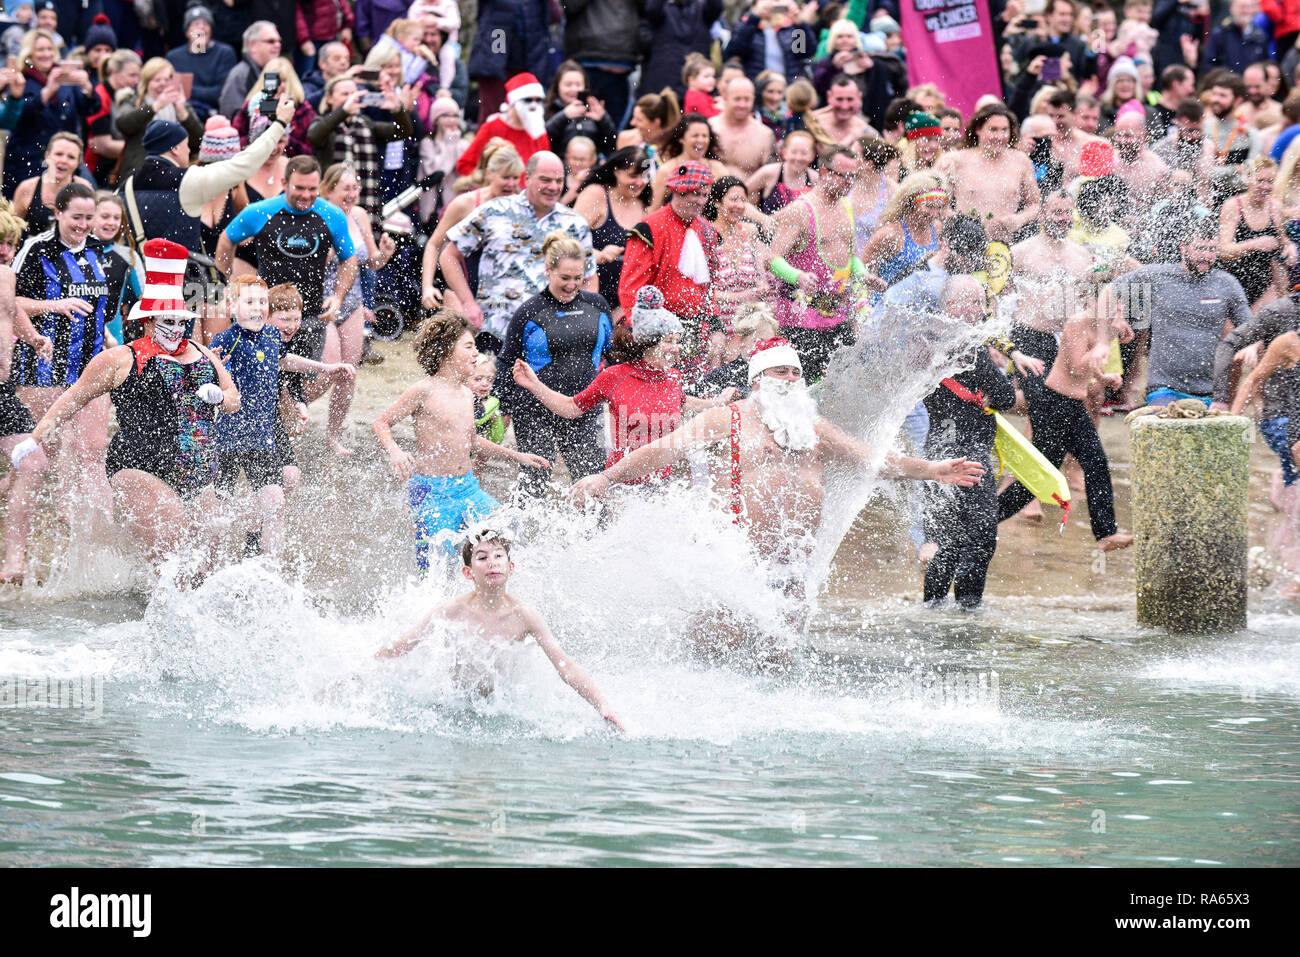 Newquay, Cornwall, UK.  1st January, 201p.  A massive turnout of hardy swimmers who braved to chilly waters of Newquay Harbour for the annual Newquay New Year's Day Dip.  The 'Dip' is held to raise funds for the CLIC SARGENT charity that gives support to young people with cancer.  Gordon Scammell/Alamy Live News. Stock Photo